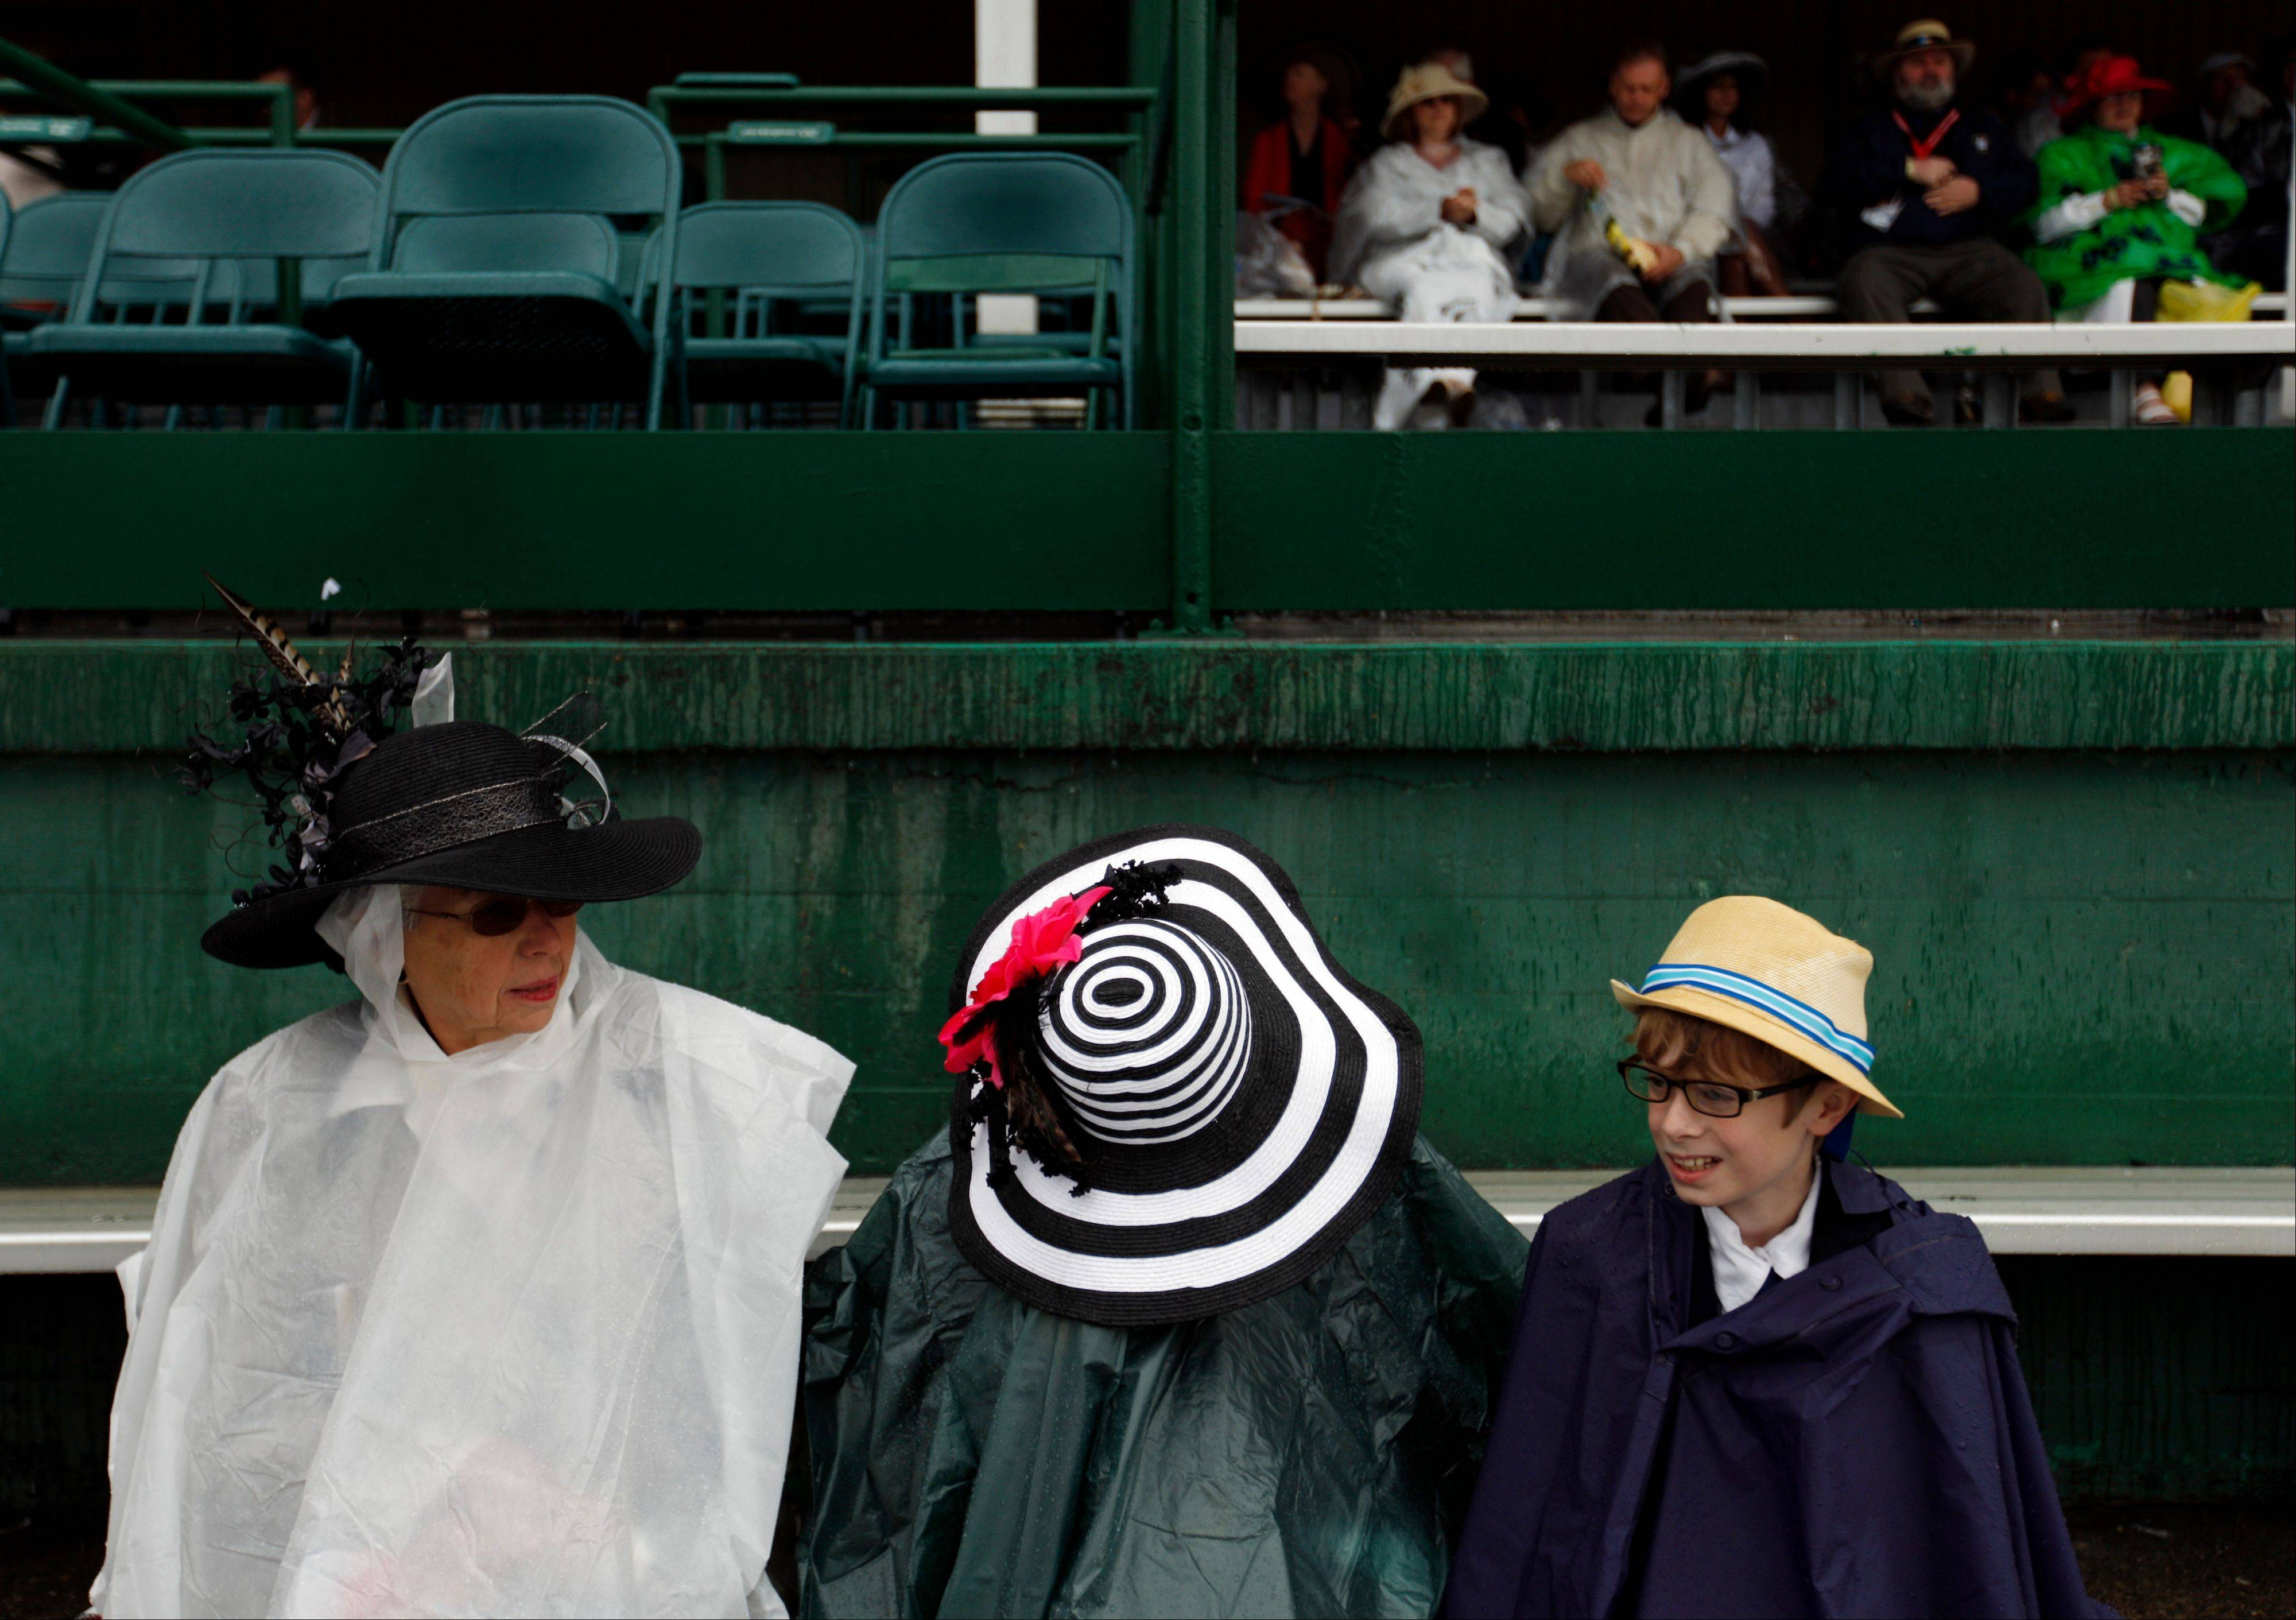 From left, Donna Osborne, from Clemens, N.C., waits in the rain with Annie and Oz before the 139th Kentucky Derby.